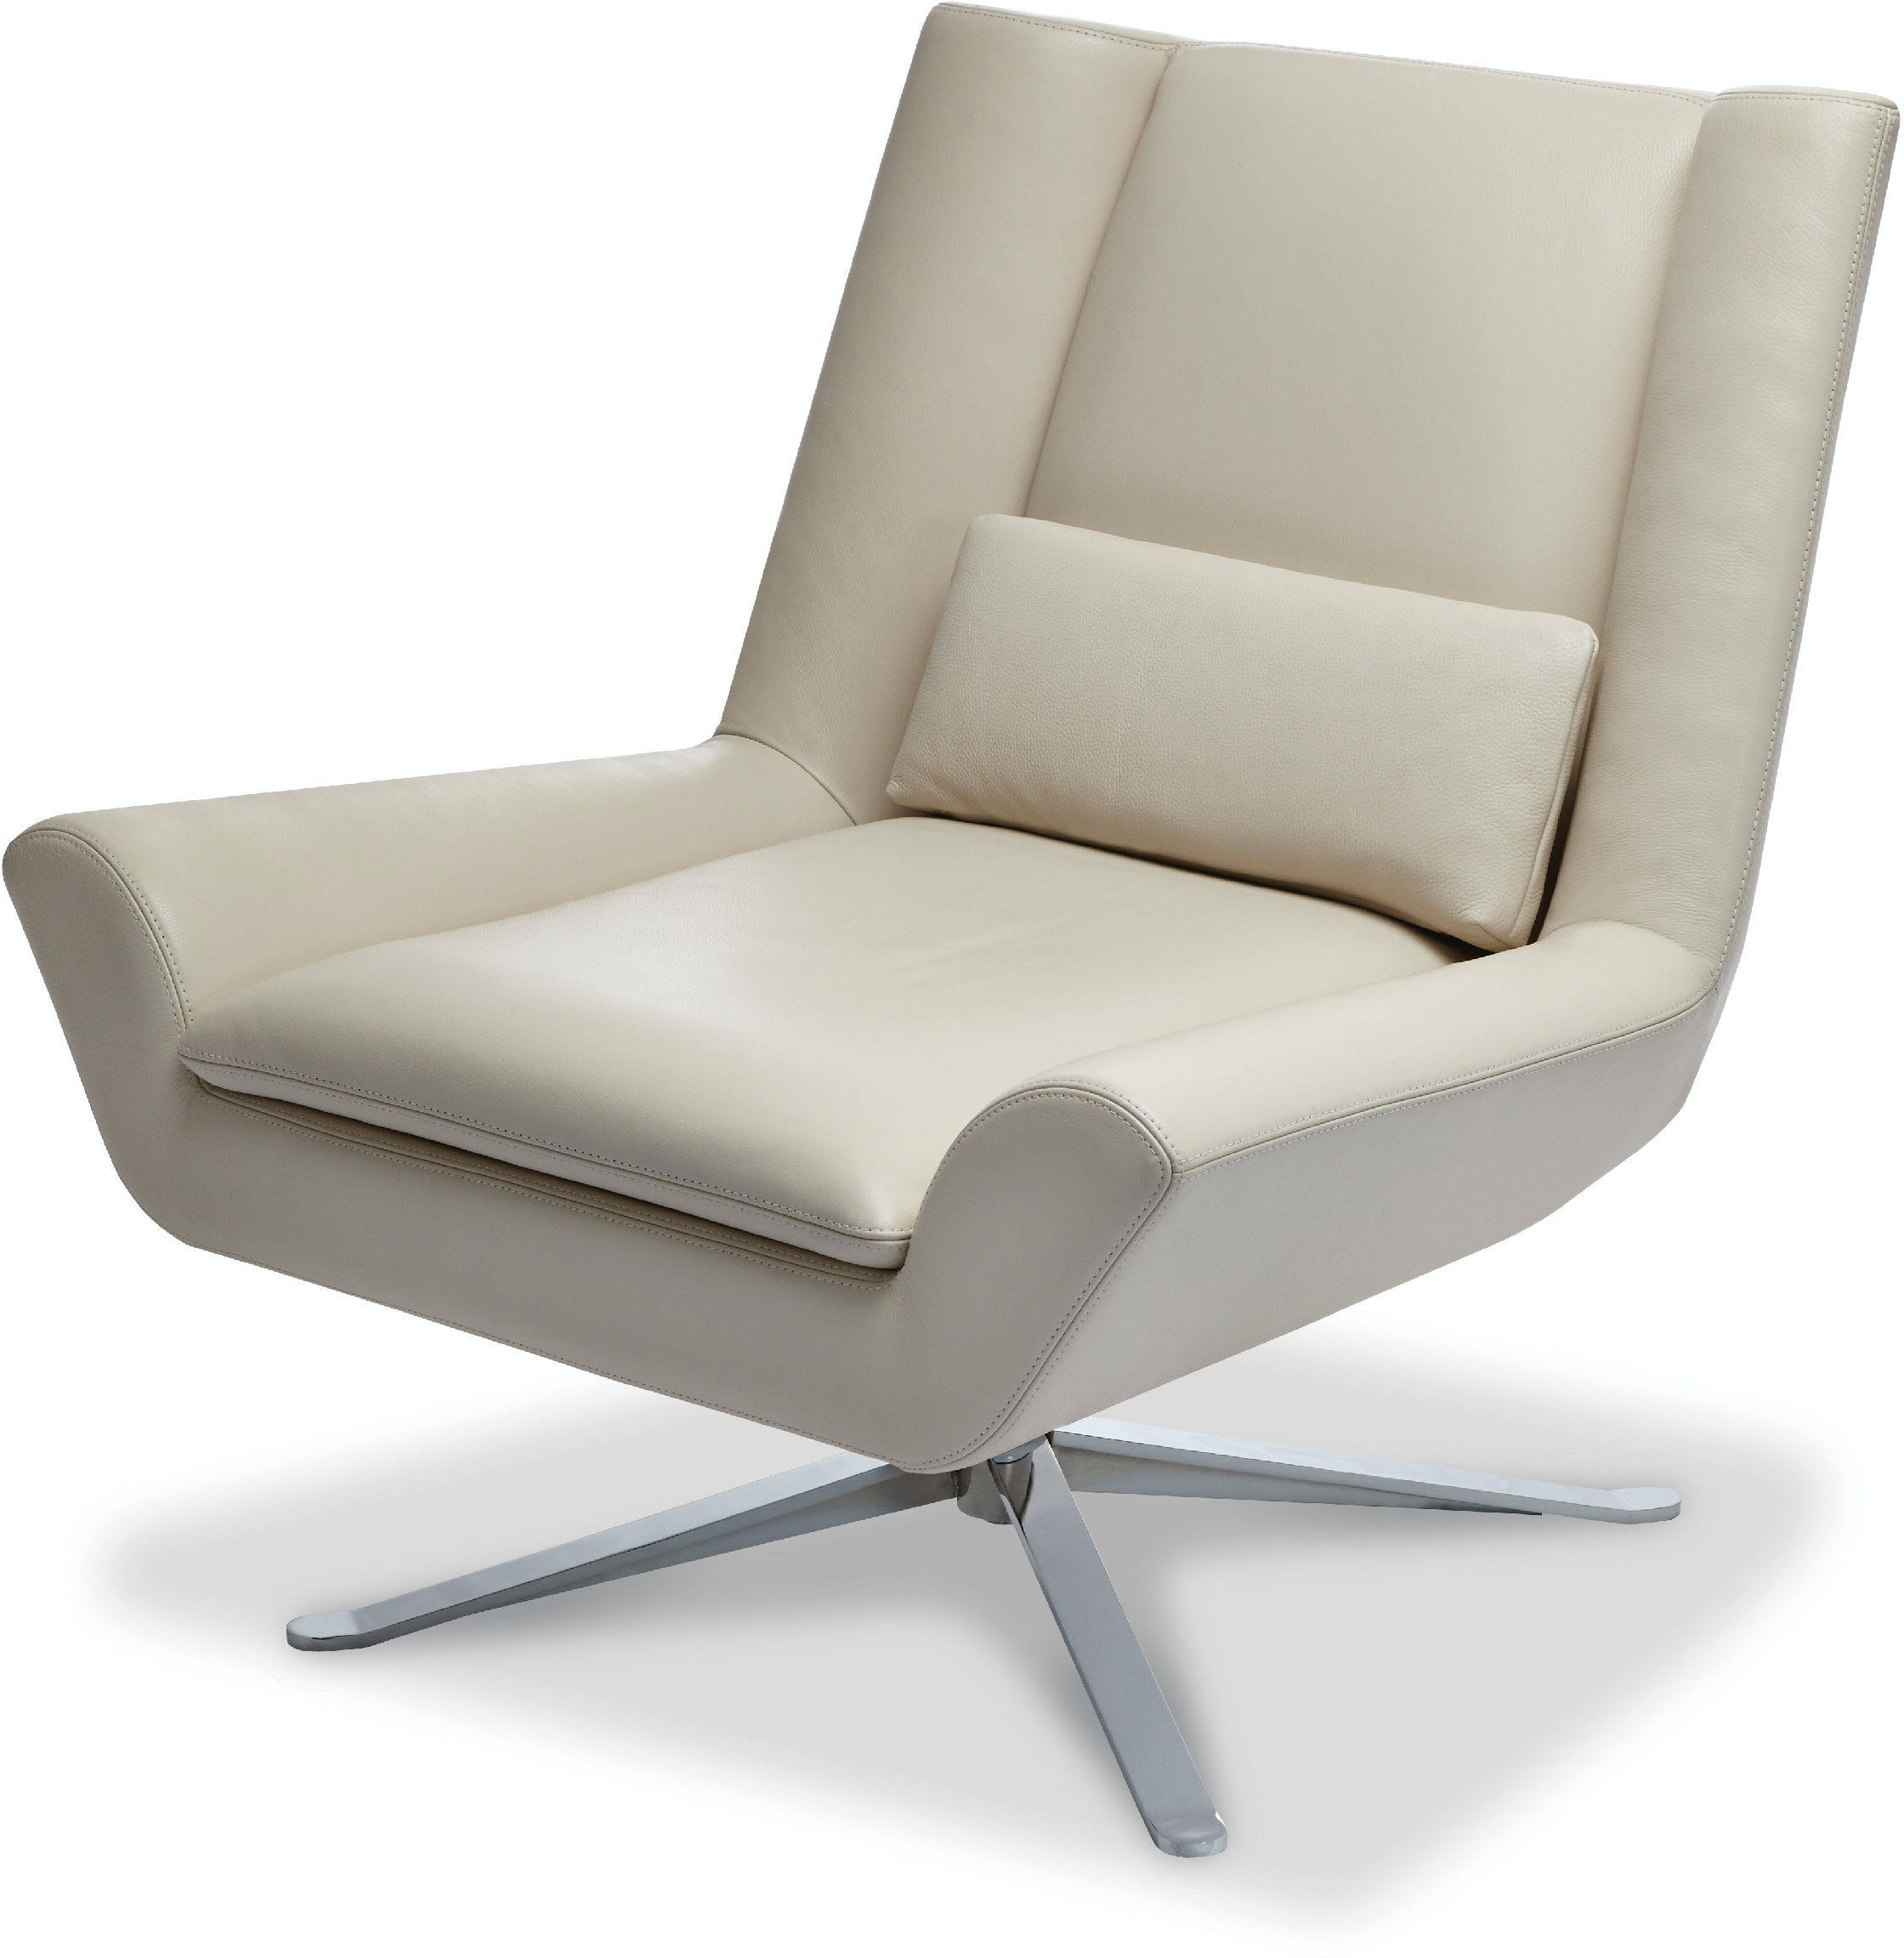 American Leather Lke Chr St Living Room Chair